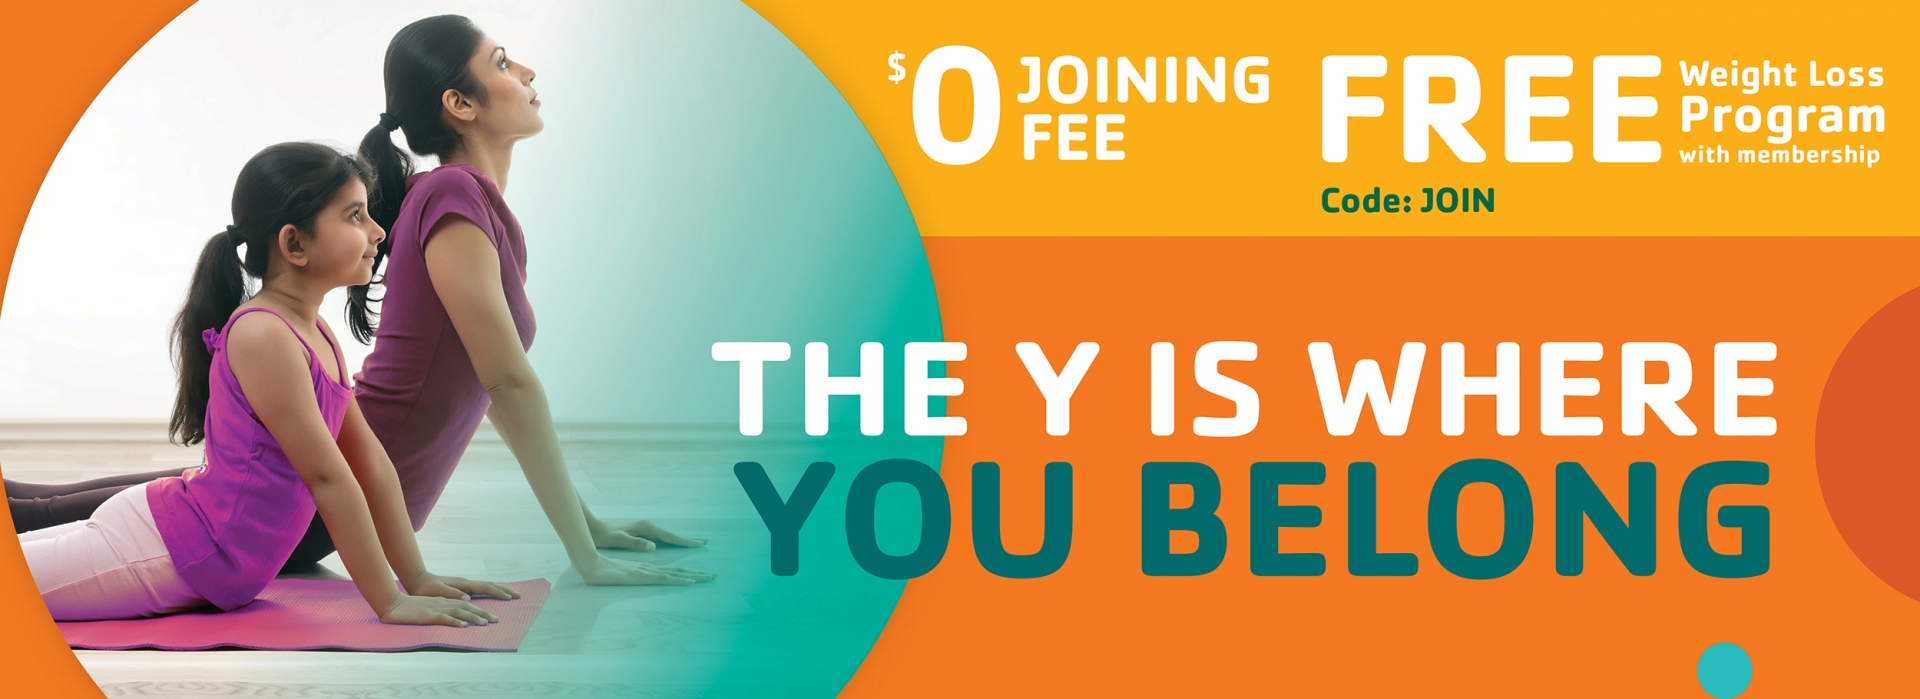 $0 joining fee with code JOIN. Free weight loss program with membership. The Y is where you belong.